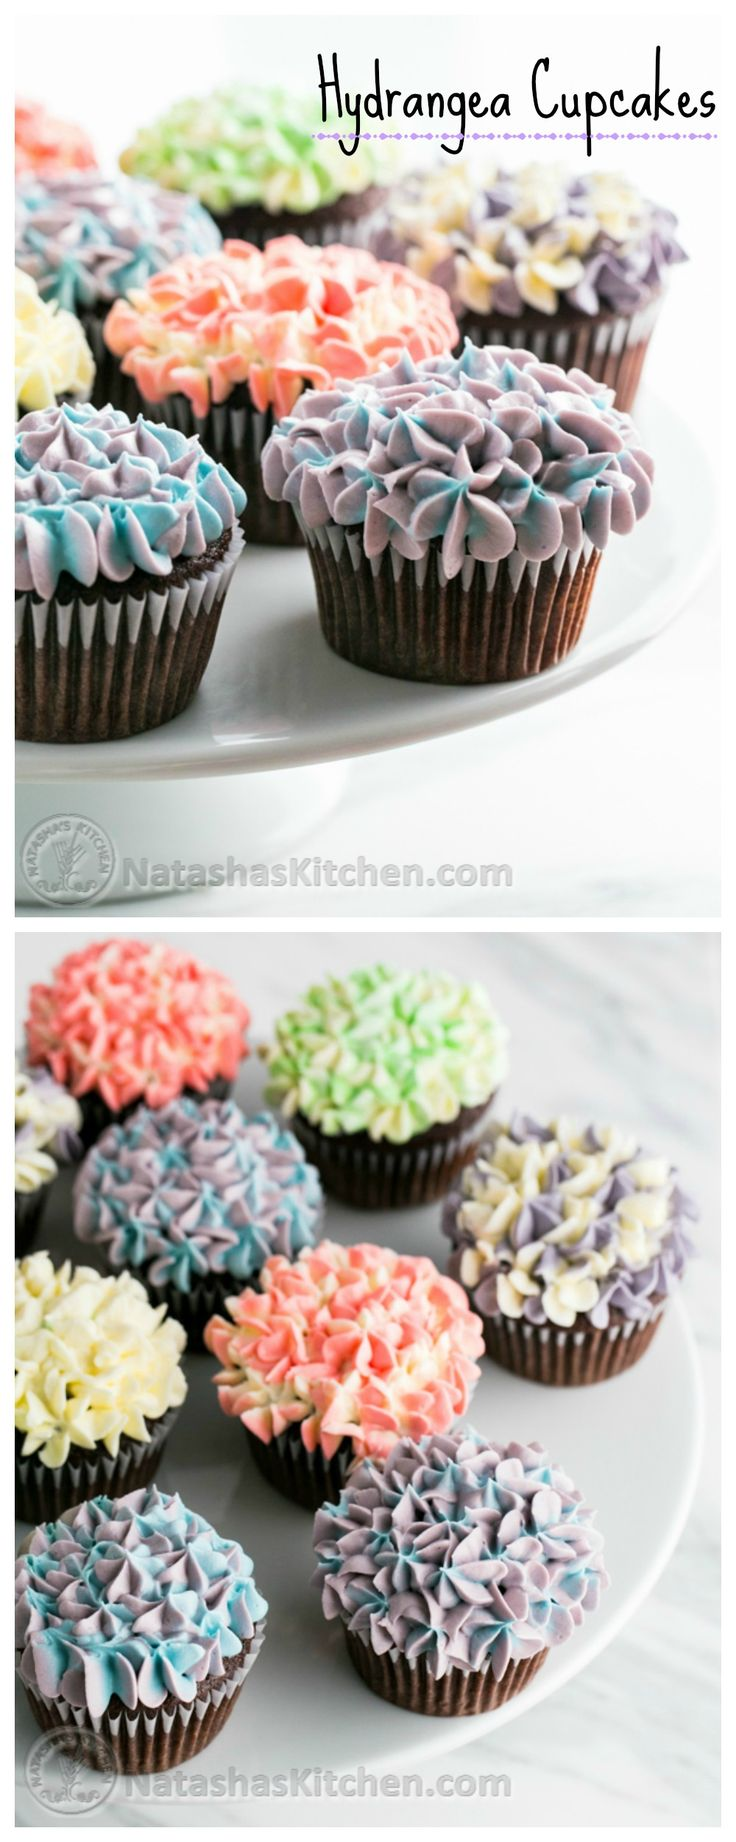 Hydrangea Cupcakes tutorial + recipe for incredible, moist chocolate cupcakes!! #sponsored by Wolf @NatashasKitchen